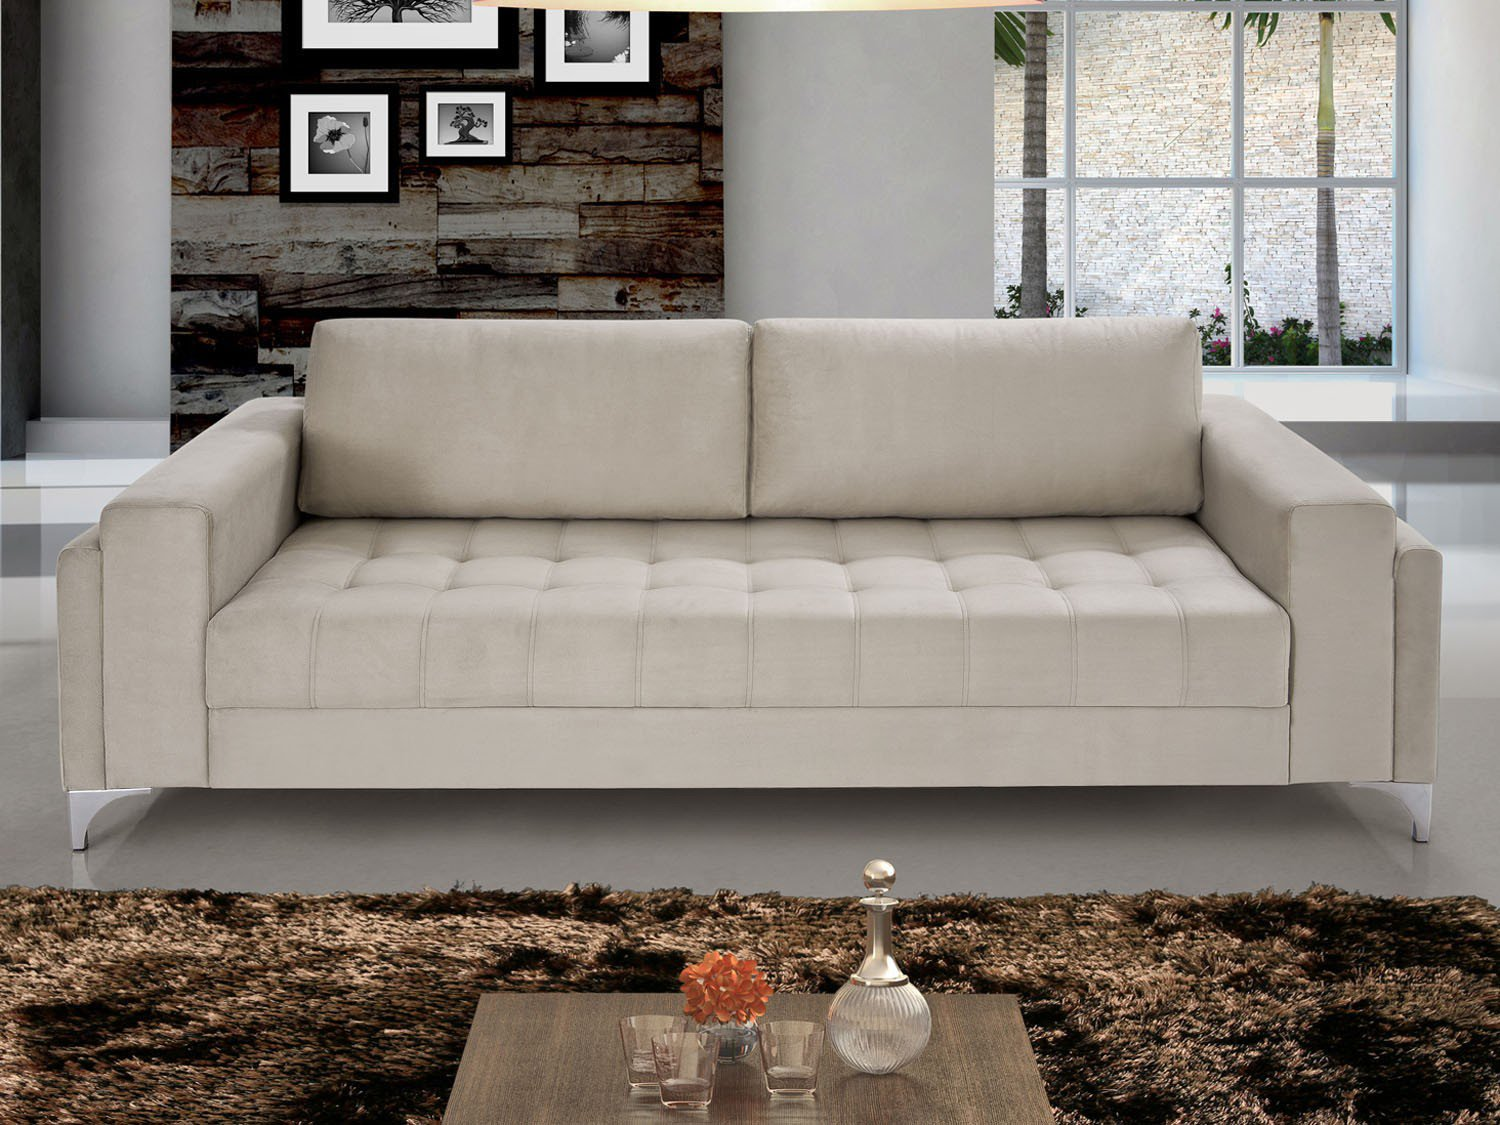 Sof 3 lugares splendore lima estofados sof s 03 lugares for Sofa 03 lugares com chaise